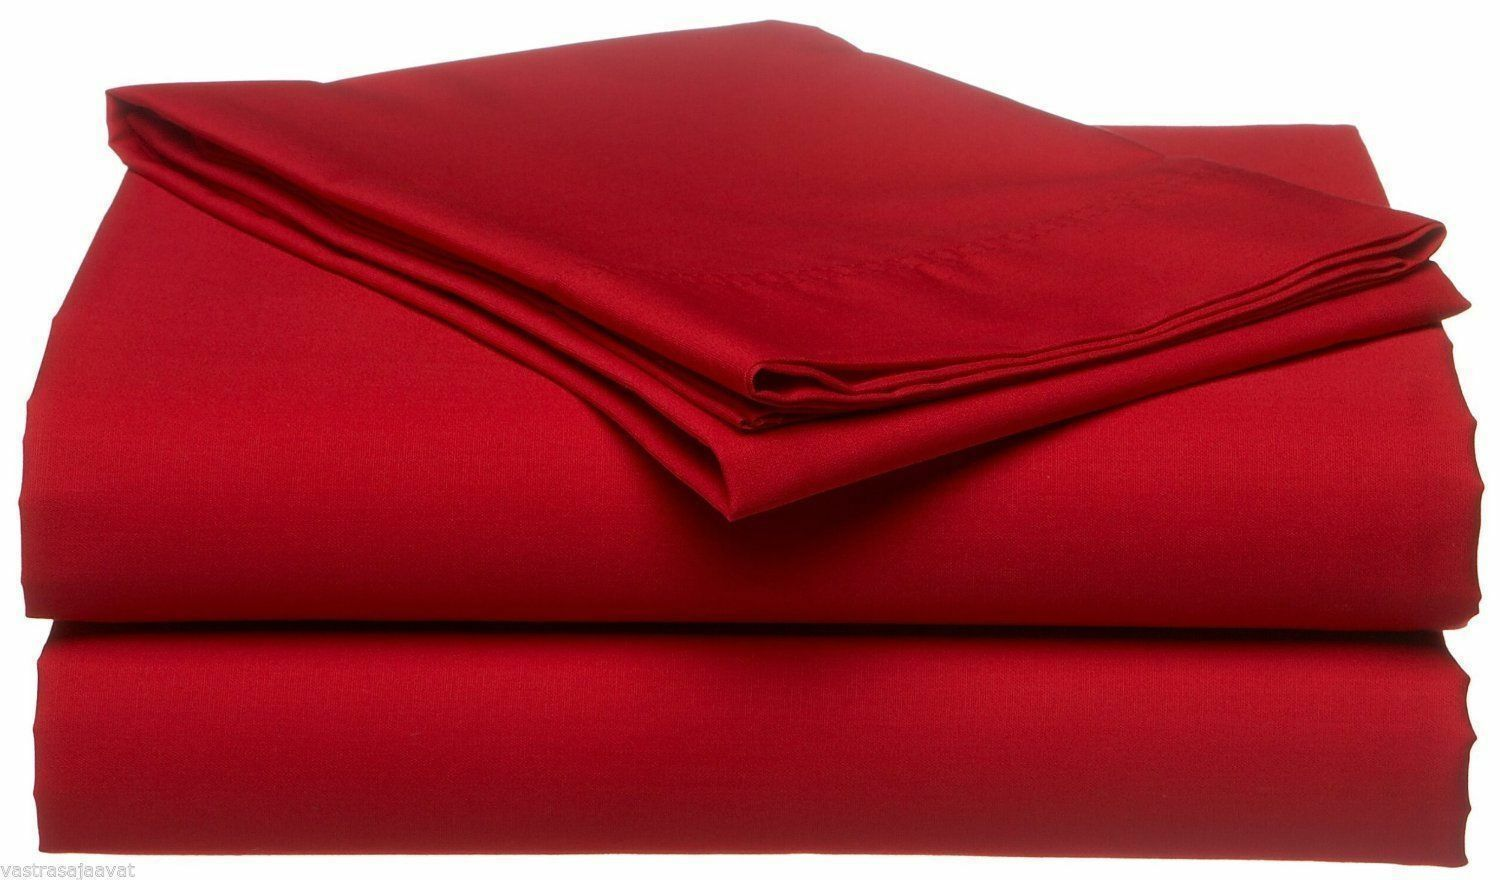 1000 Thread Count Soft Egyptian Cotton US-Bedding Items US Sizes Red Solid